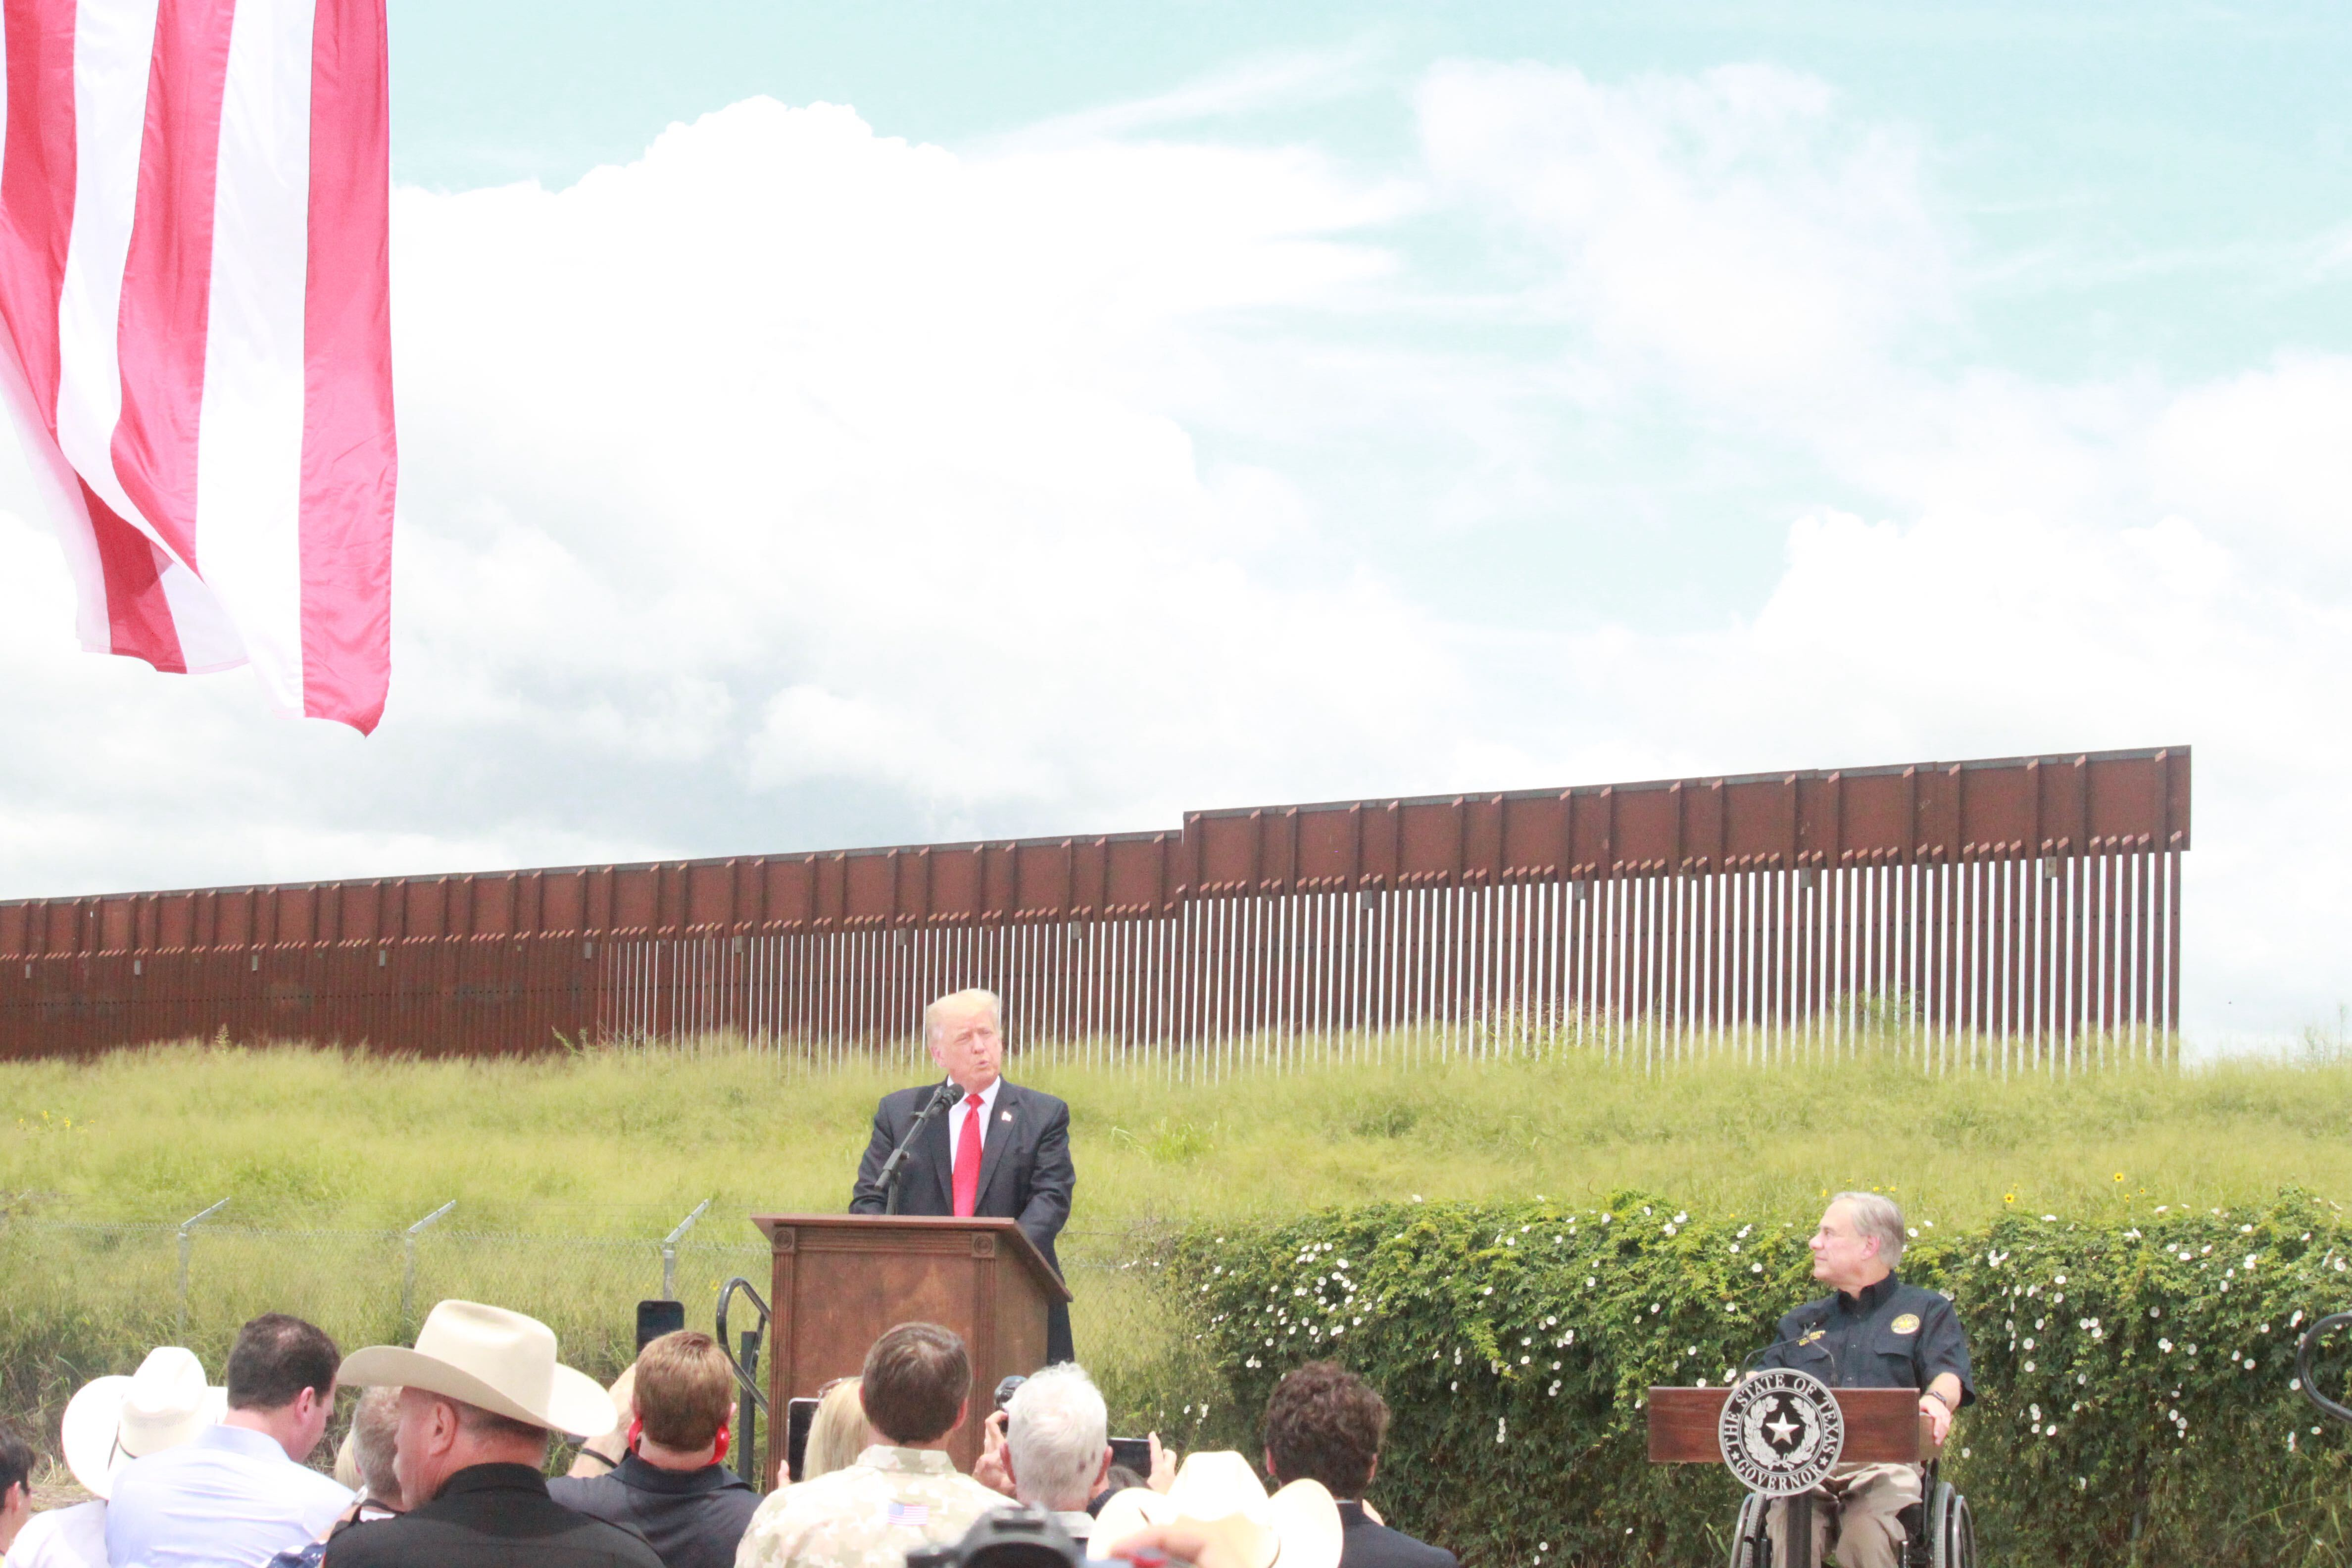 Former President Donald Trump and Gov. Greg Abbott were in the Rio Grande Valley Wednesday to discuss immigration and border issues (Nexstar/Wes Rapaport)